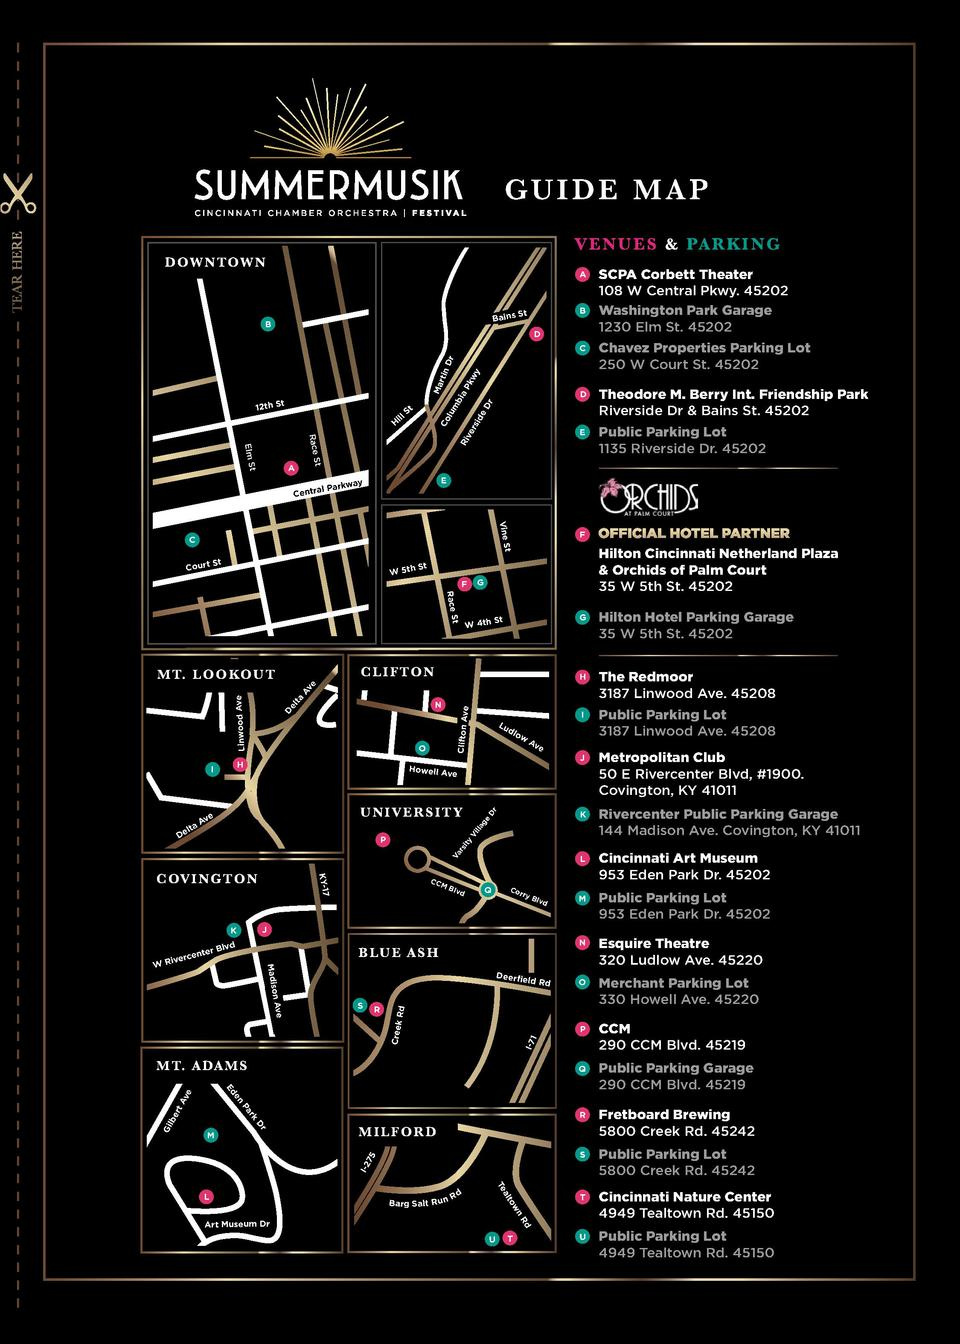 TEAR HERE  GUIDE MAP V E N U E S   PA R K I N G  D OW N TOW N  A  Bains  B  B  St  D C  Chavez Properties Parking Lot 250 ...